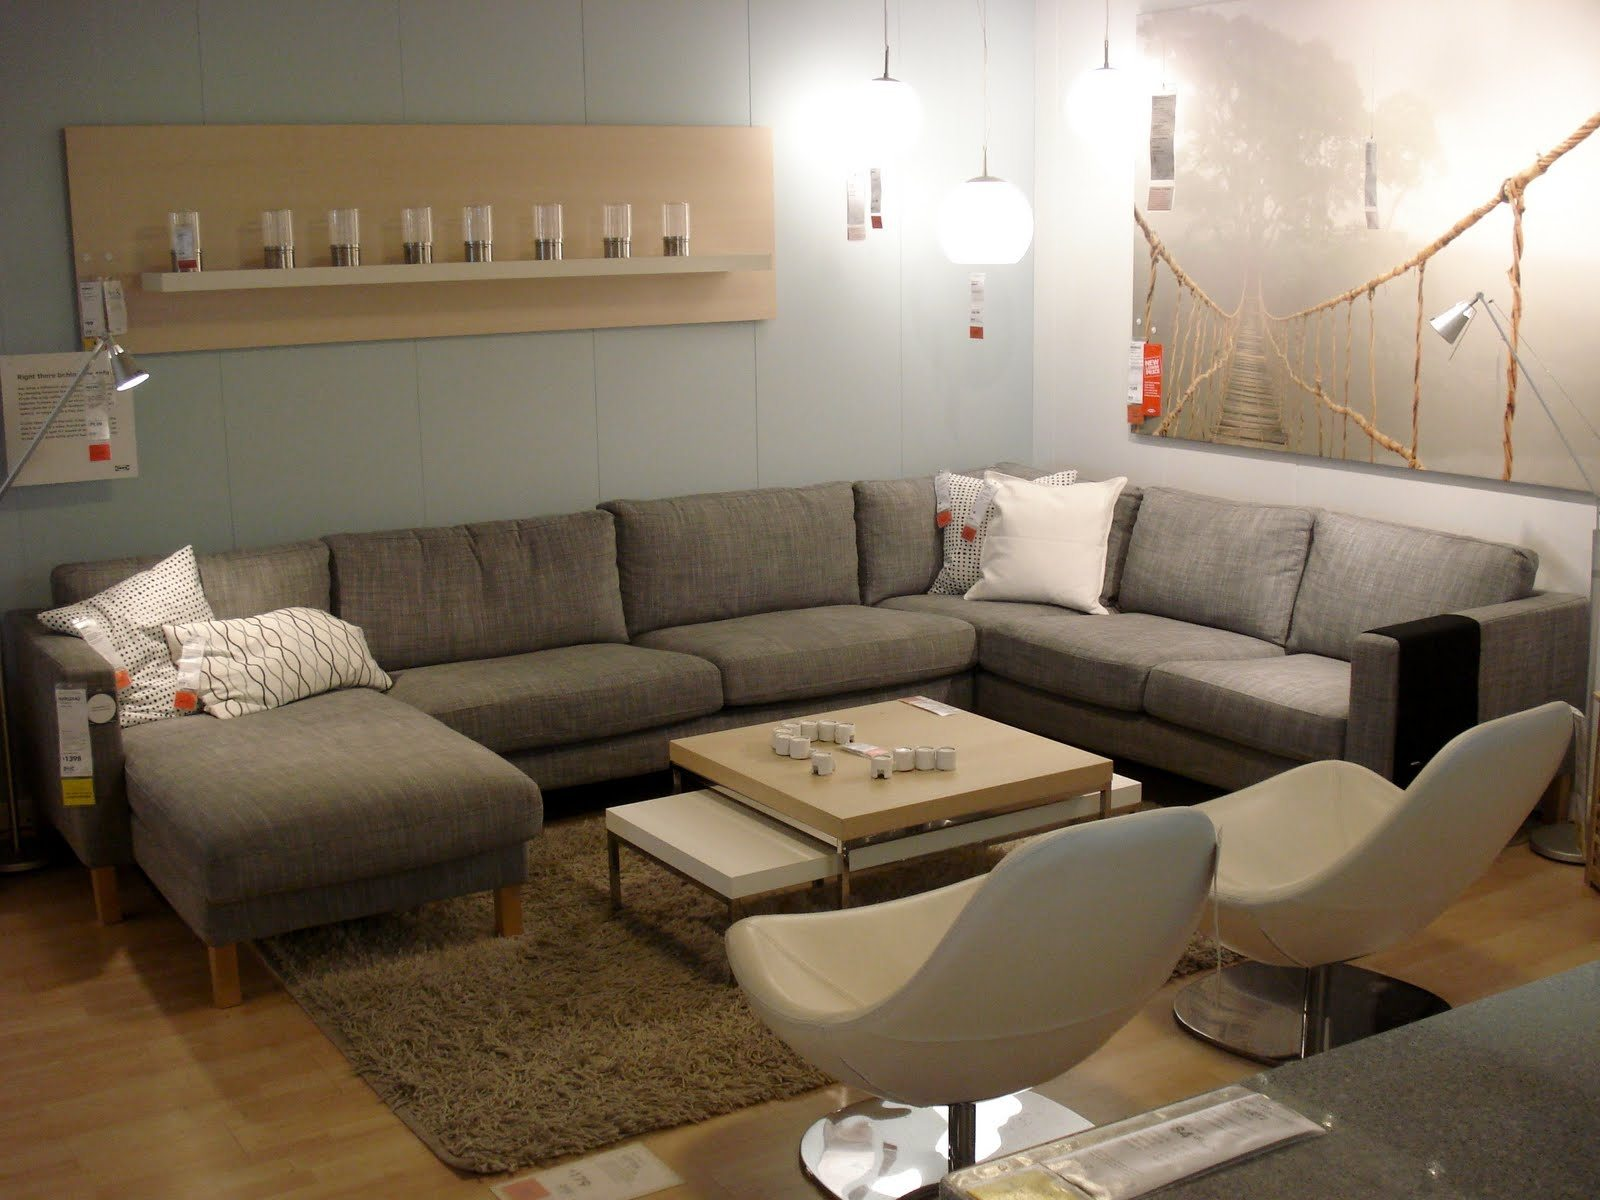 ikea-sectional-sofa-has-one-of-the-best-kind-of-other-is-furniture-interesting-sectional-sofas